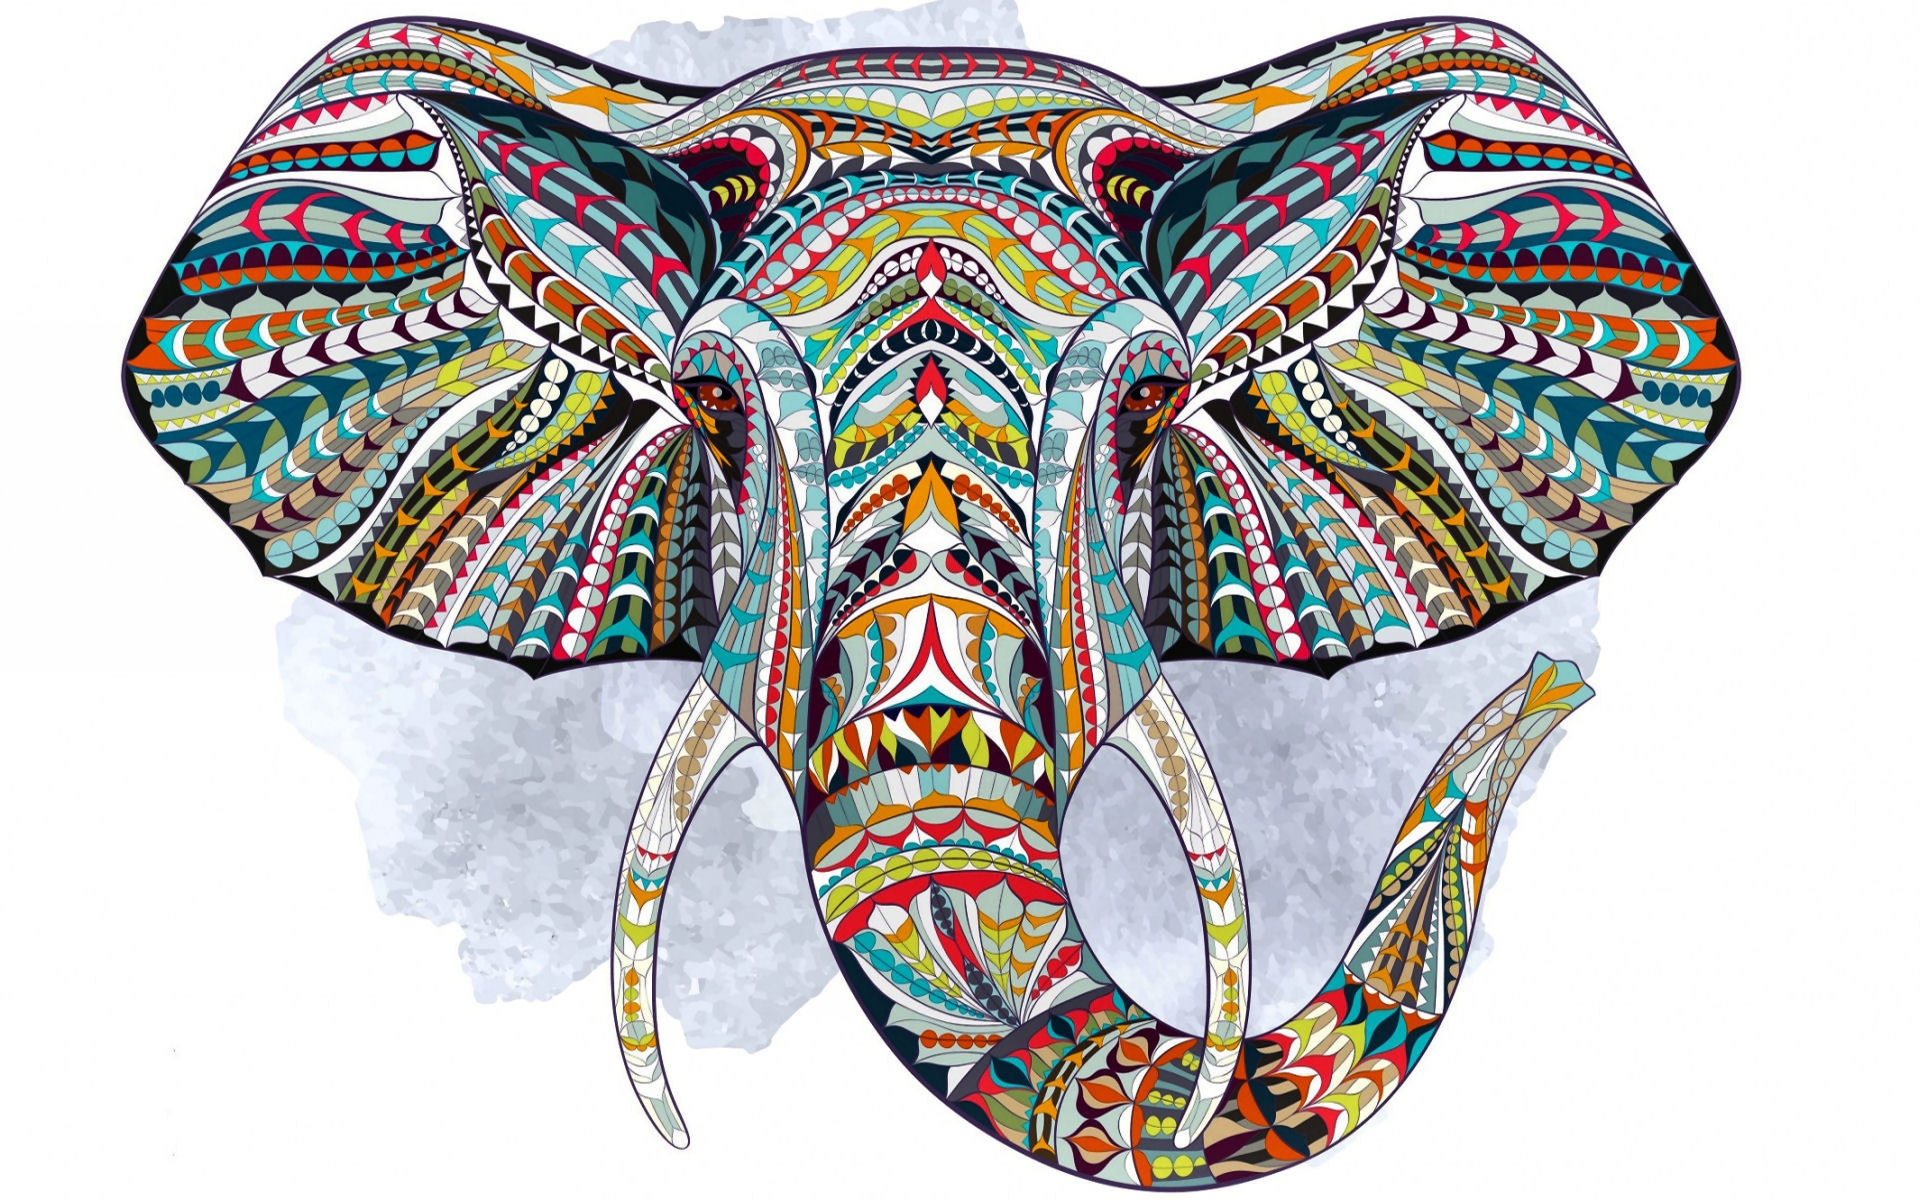 1920x1200 Ethnic Elephant Desktop PC And Mac Wallpaper